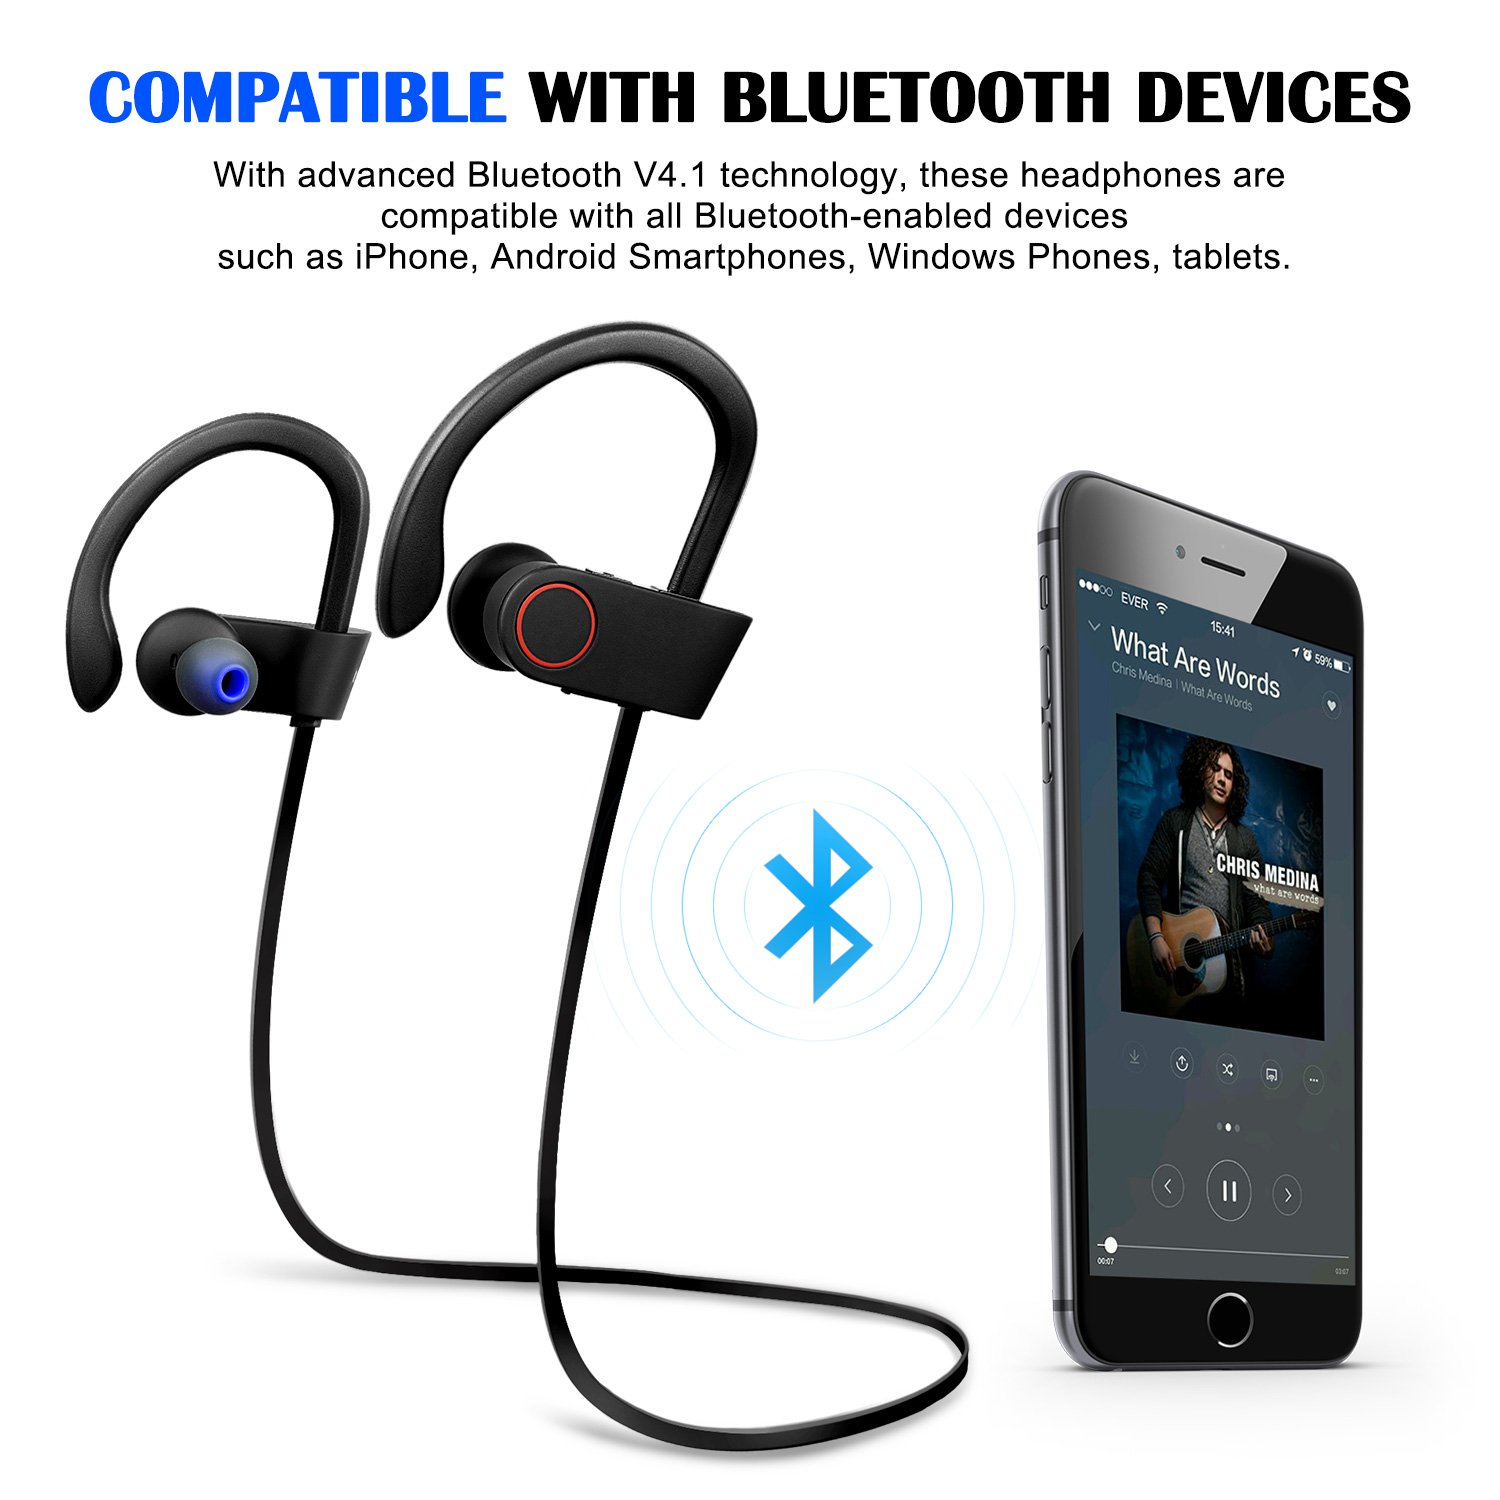 Zip Up Headphones Amazoncom Bluetooth Headphones Bestfy Wireless Stereo Earbuds